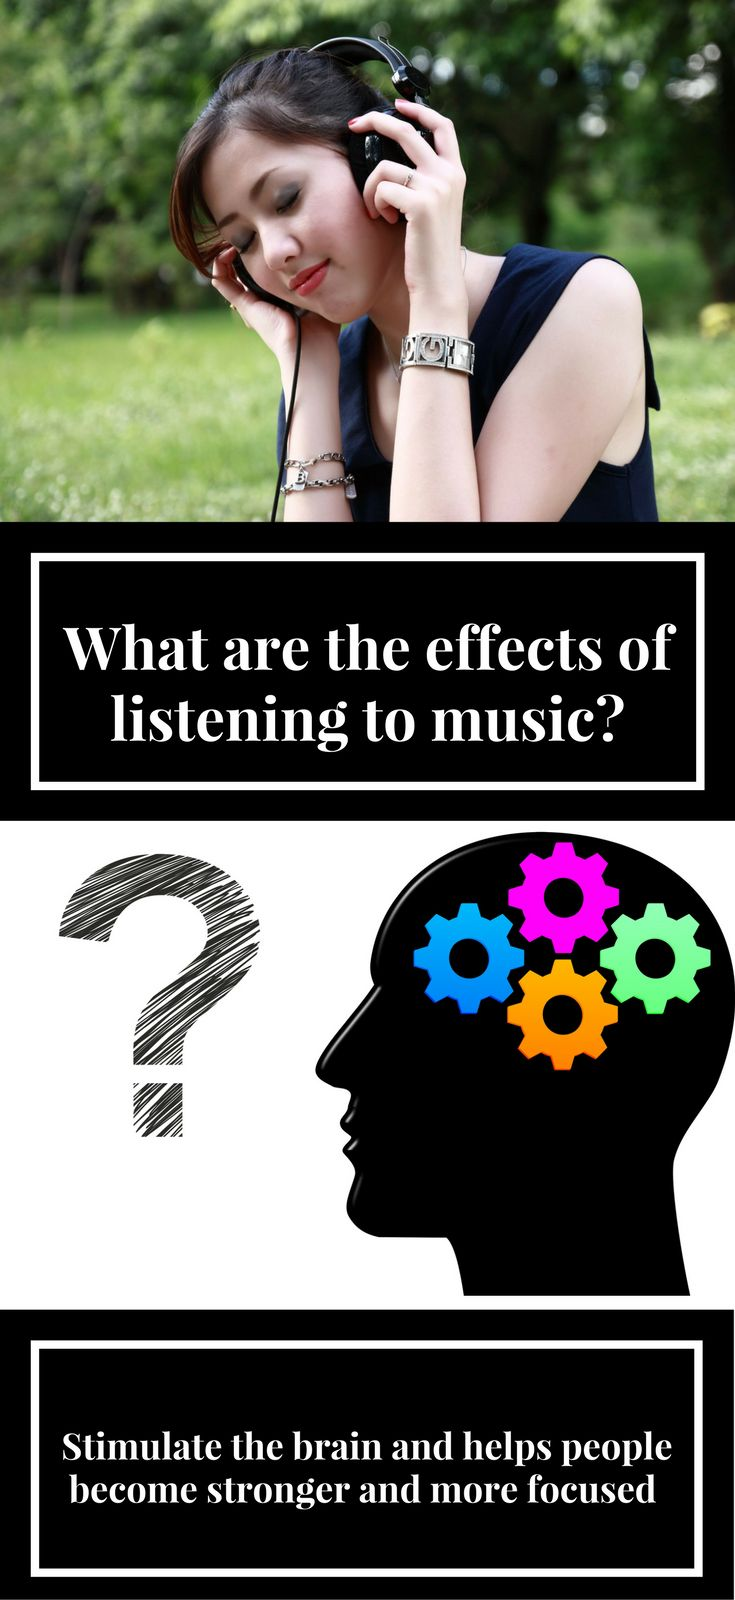 the positive effects of music Though it's sometimes hard in studies like this to separate out the effects of music versus other factors, like the positive impacts of simple social contact, at least one recent study found that music had a unique contribution to make in reducing anxiety and stress in a children's hospital, above and beyond social contributions.